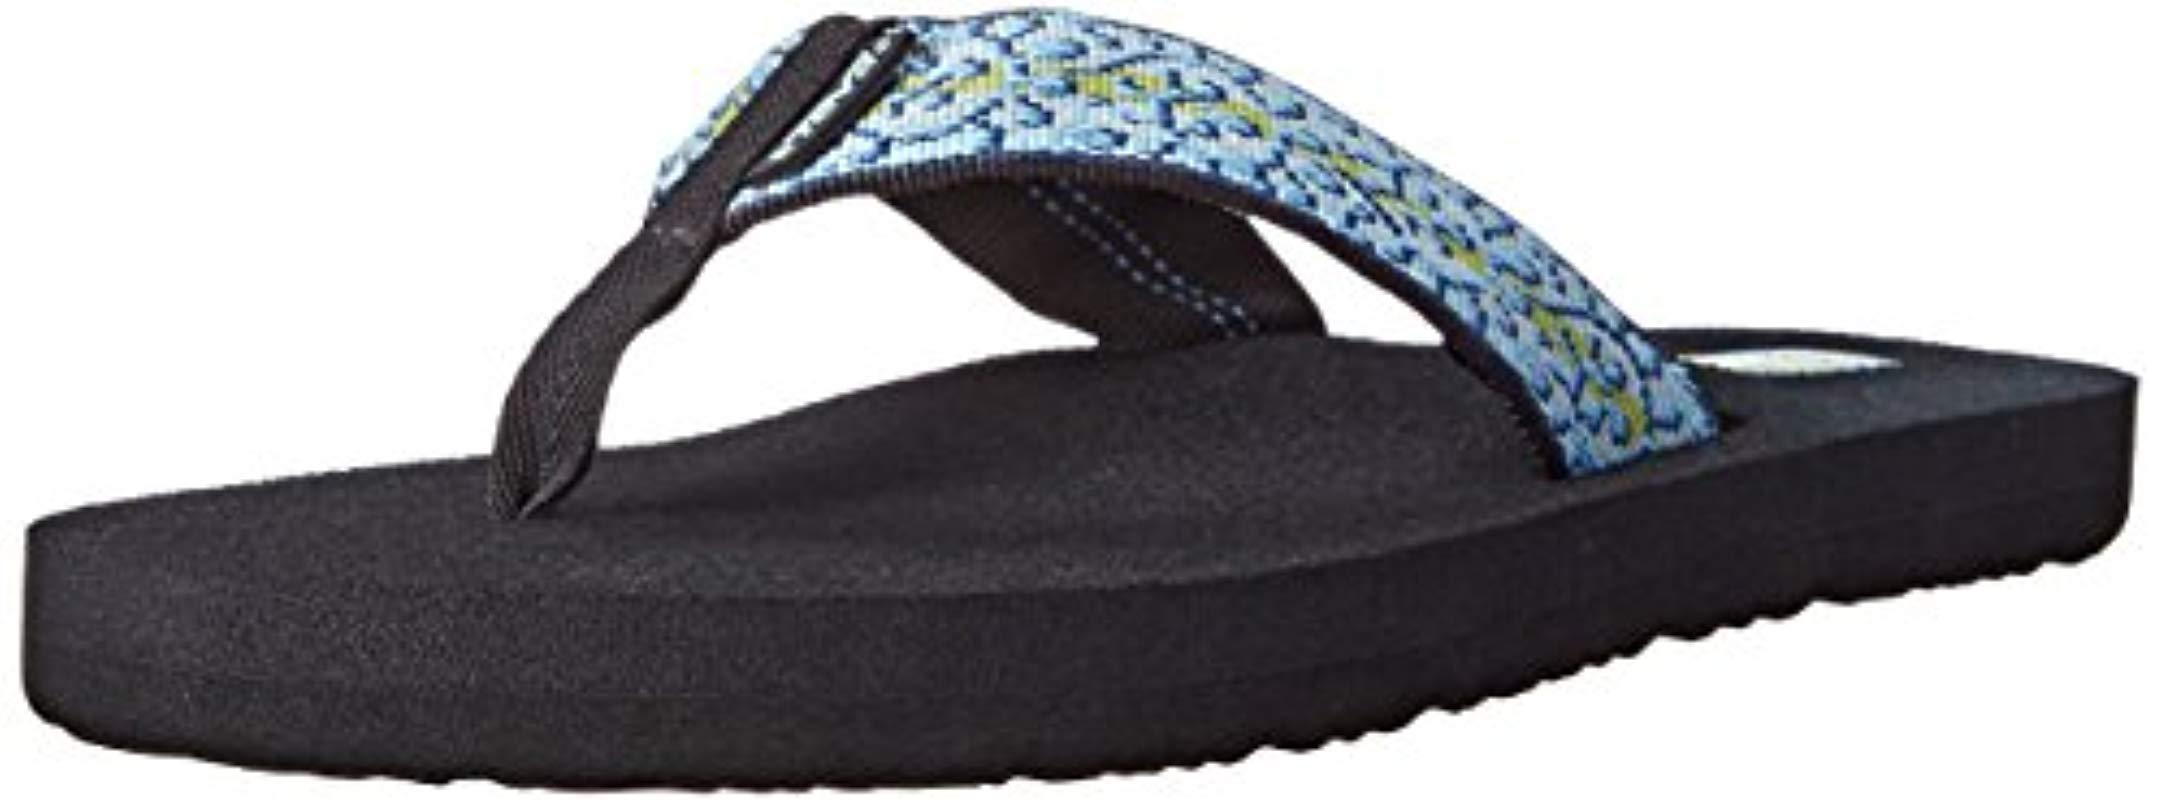 207956ff8e78 Lyst - Teva Mush Ii Flip-flop Two-pack in Black